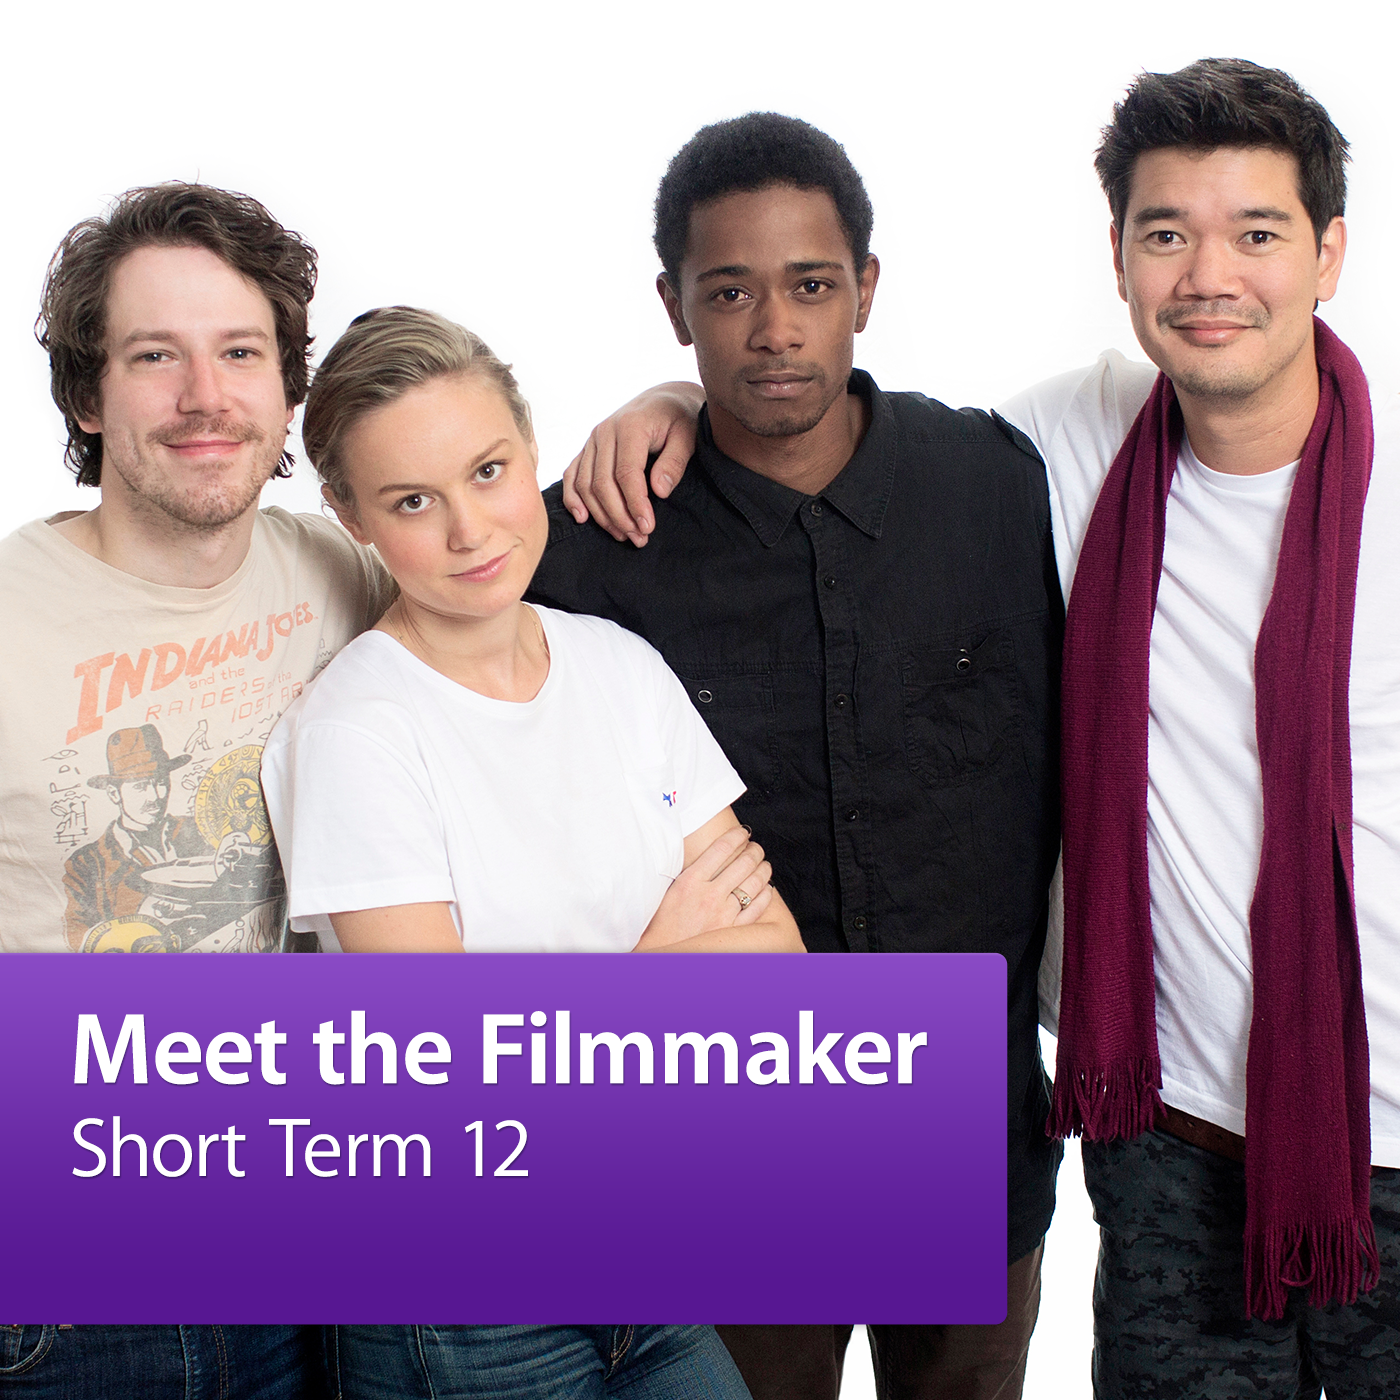 Short Term 12: Meet the Filmmaker